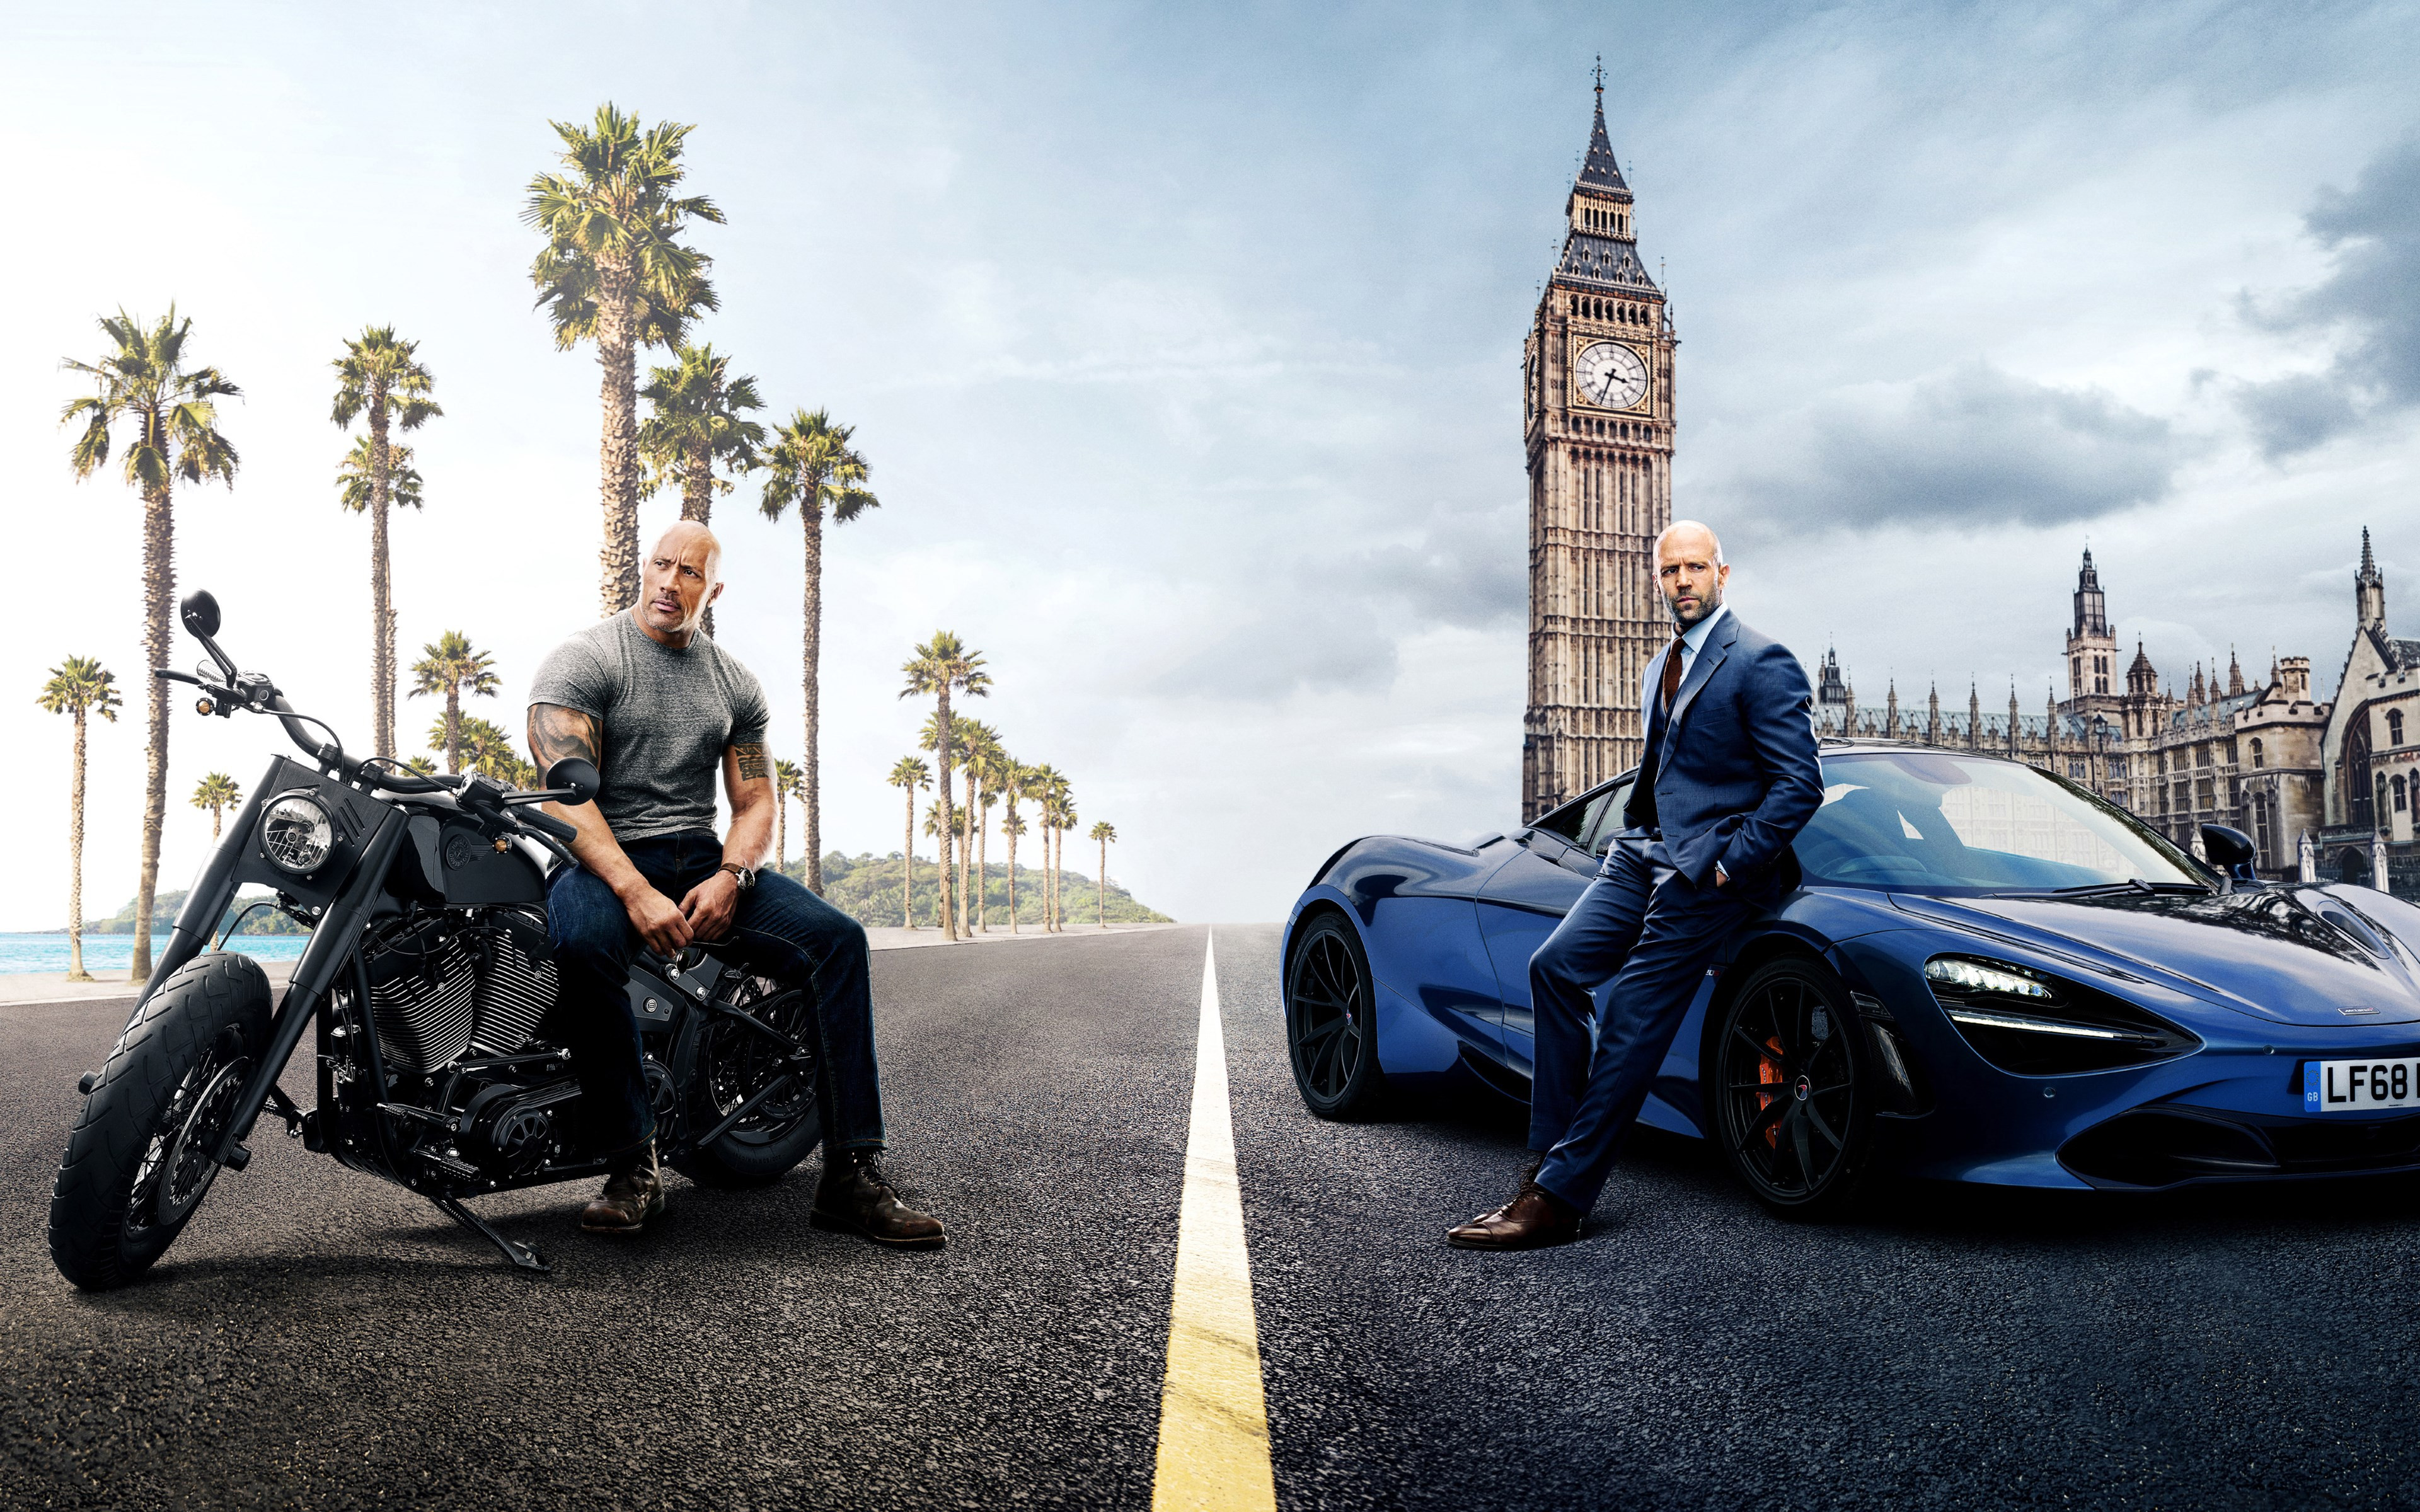 Hobbs and Shaw wallpaper 3840x2400